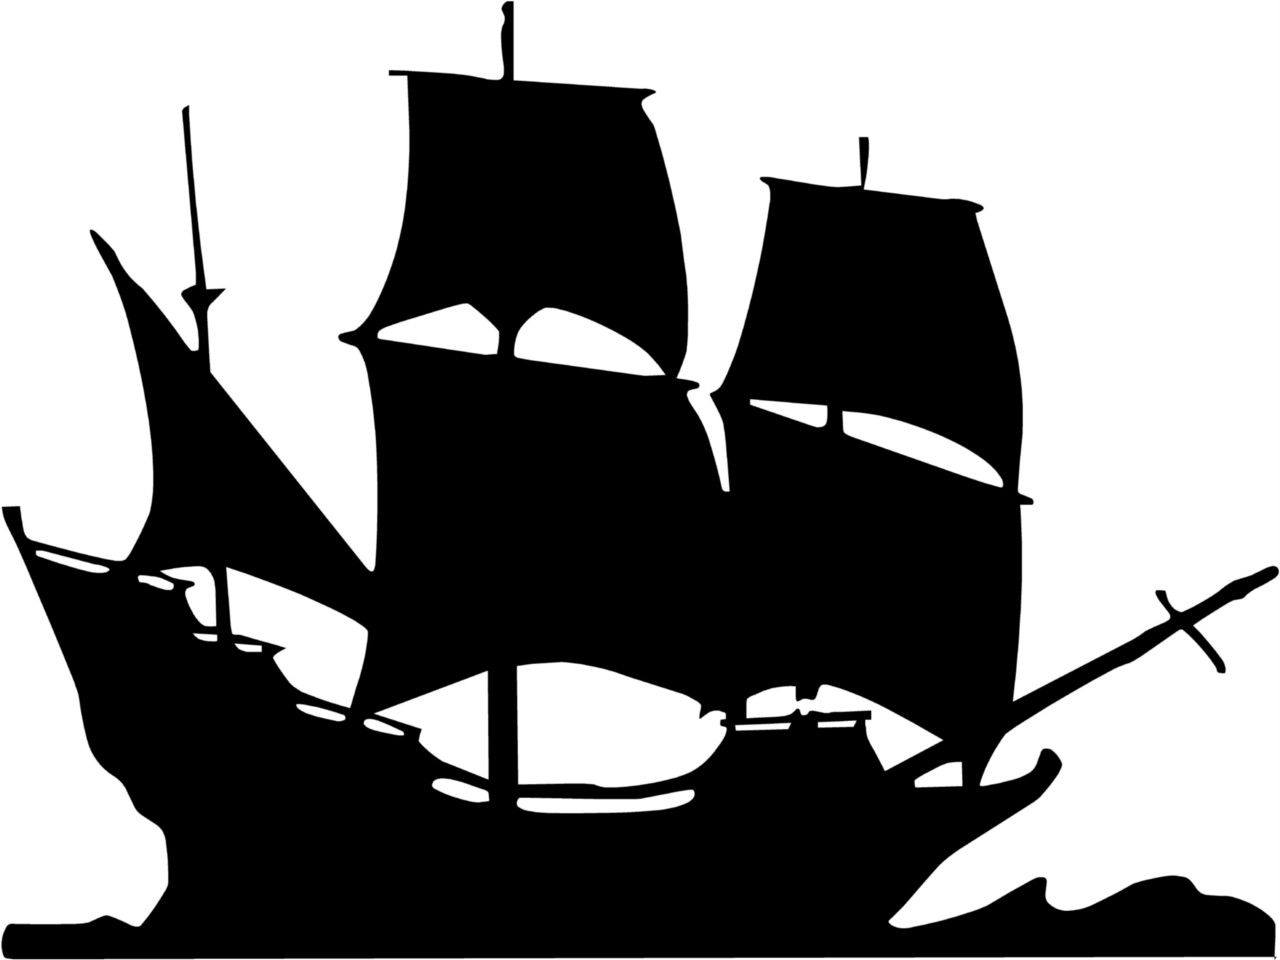 Mayflower clipart pirate ship. Details about anchor wall